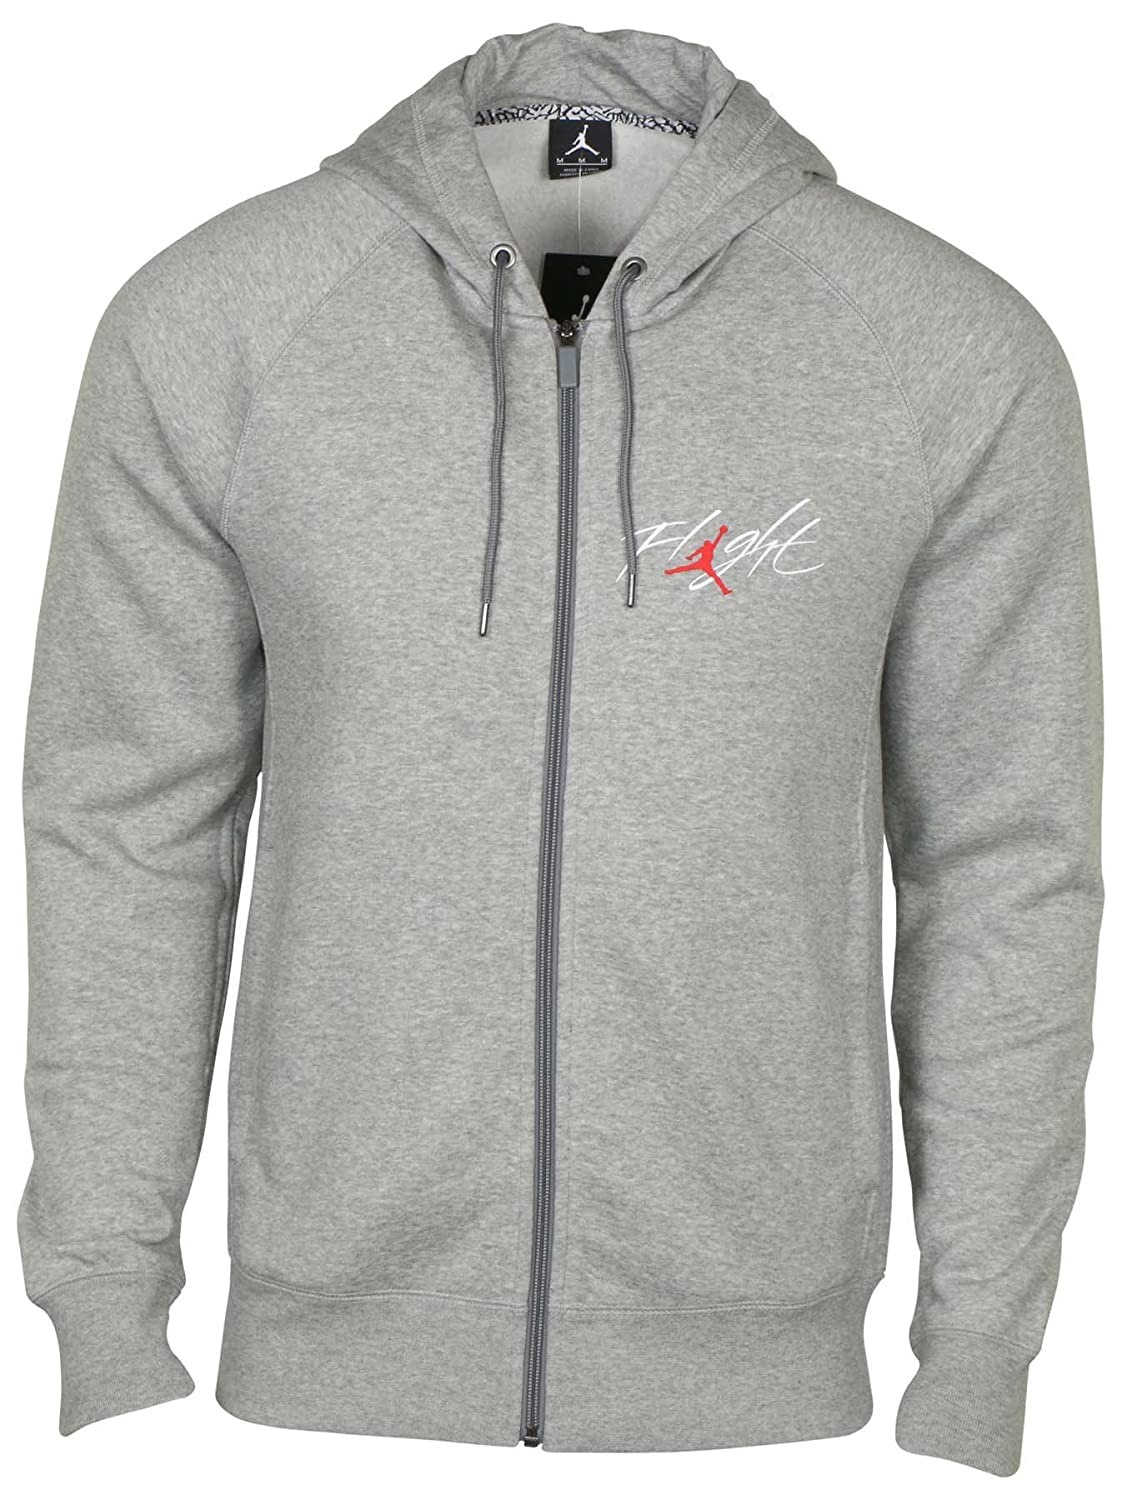 44d91d9a7f92cc Top 10 wholesale Nike Zip Up Hoodie - Chinabrands.com